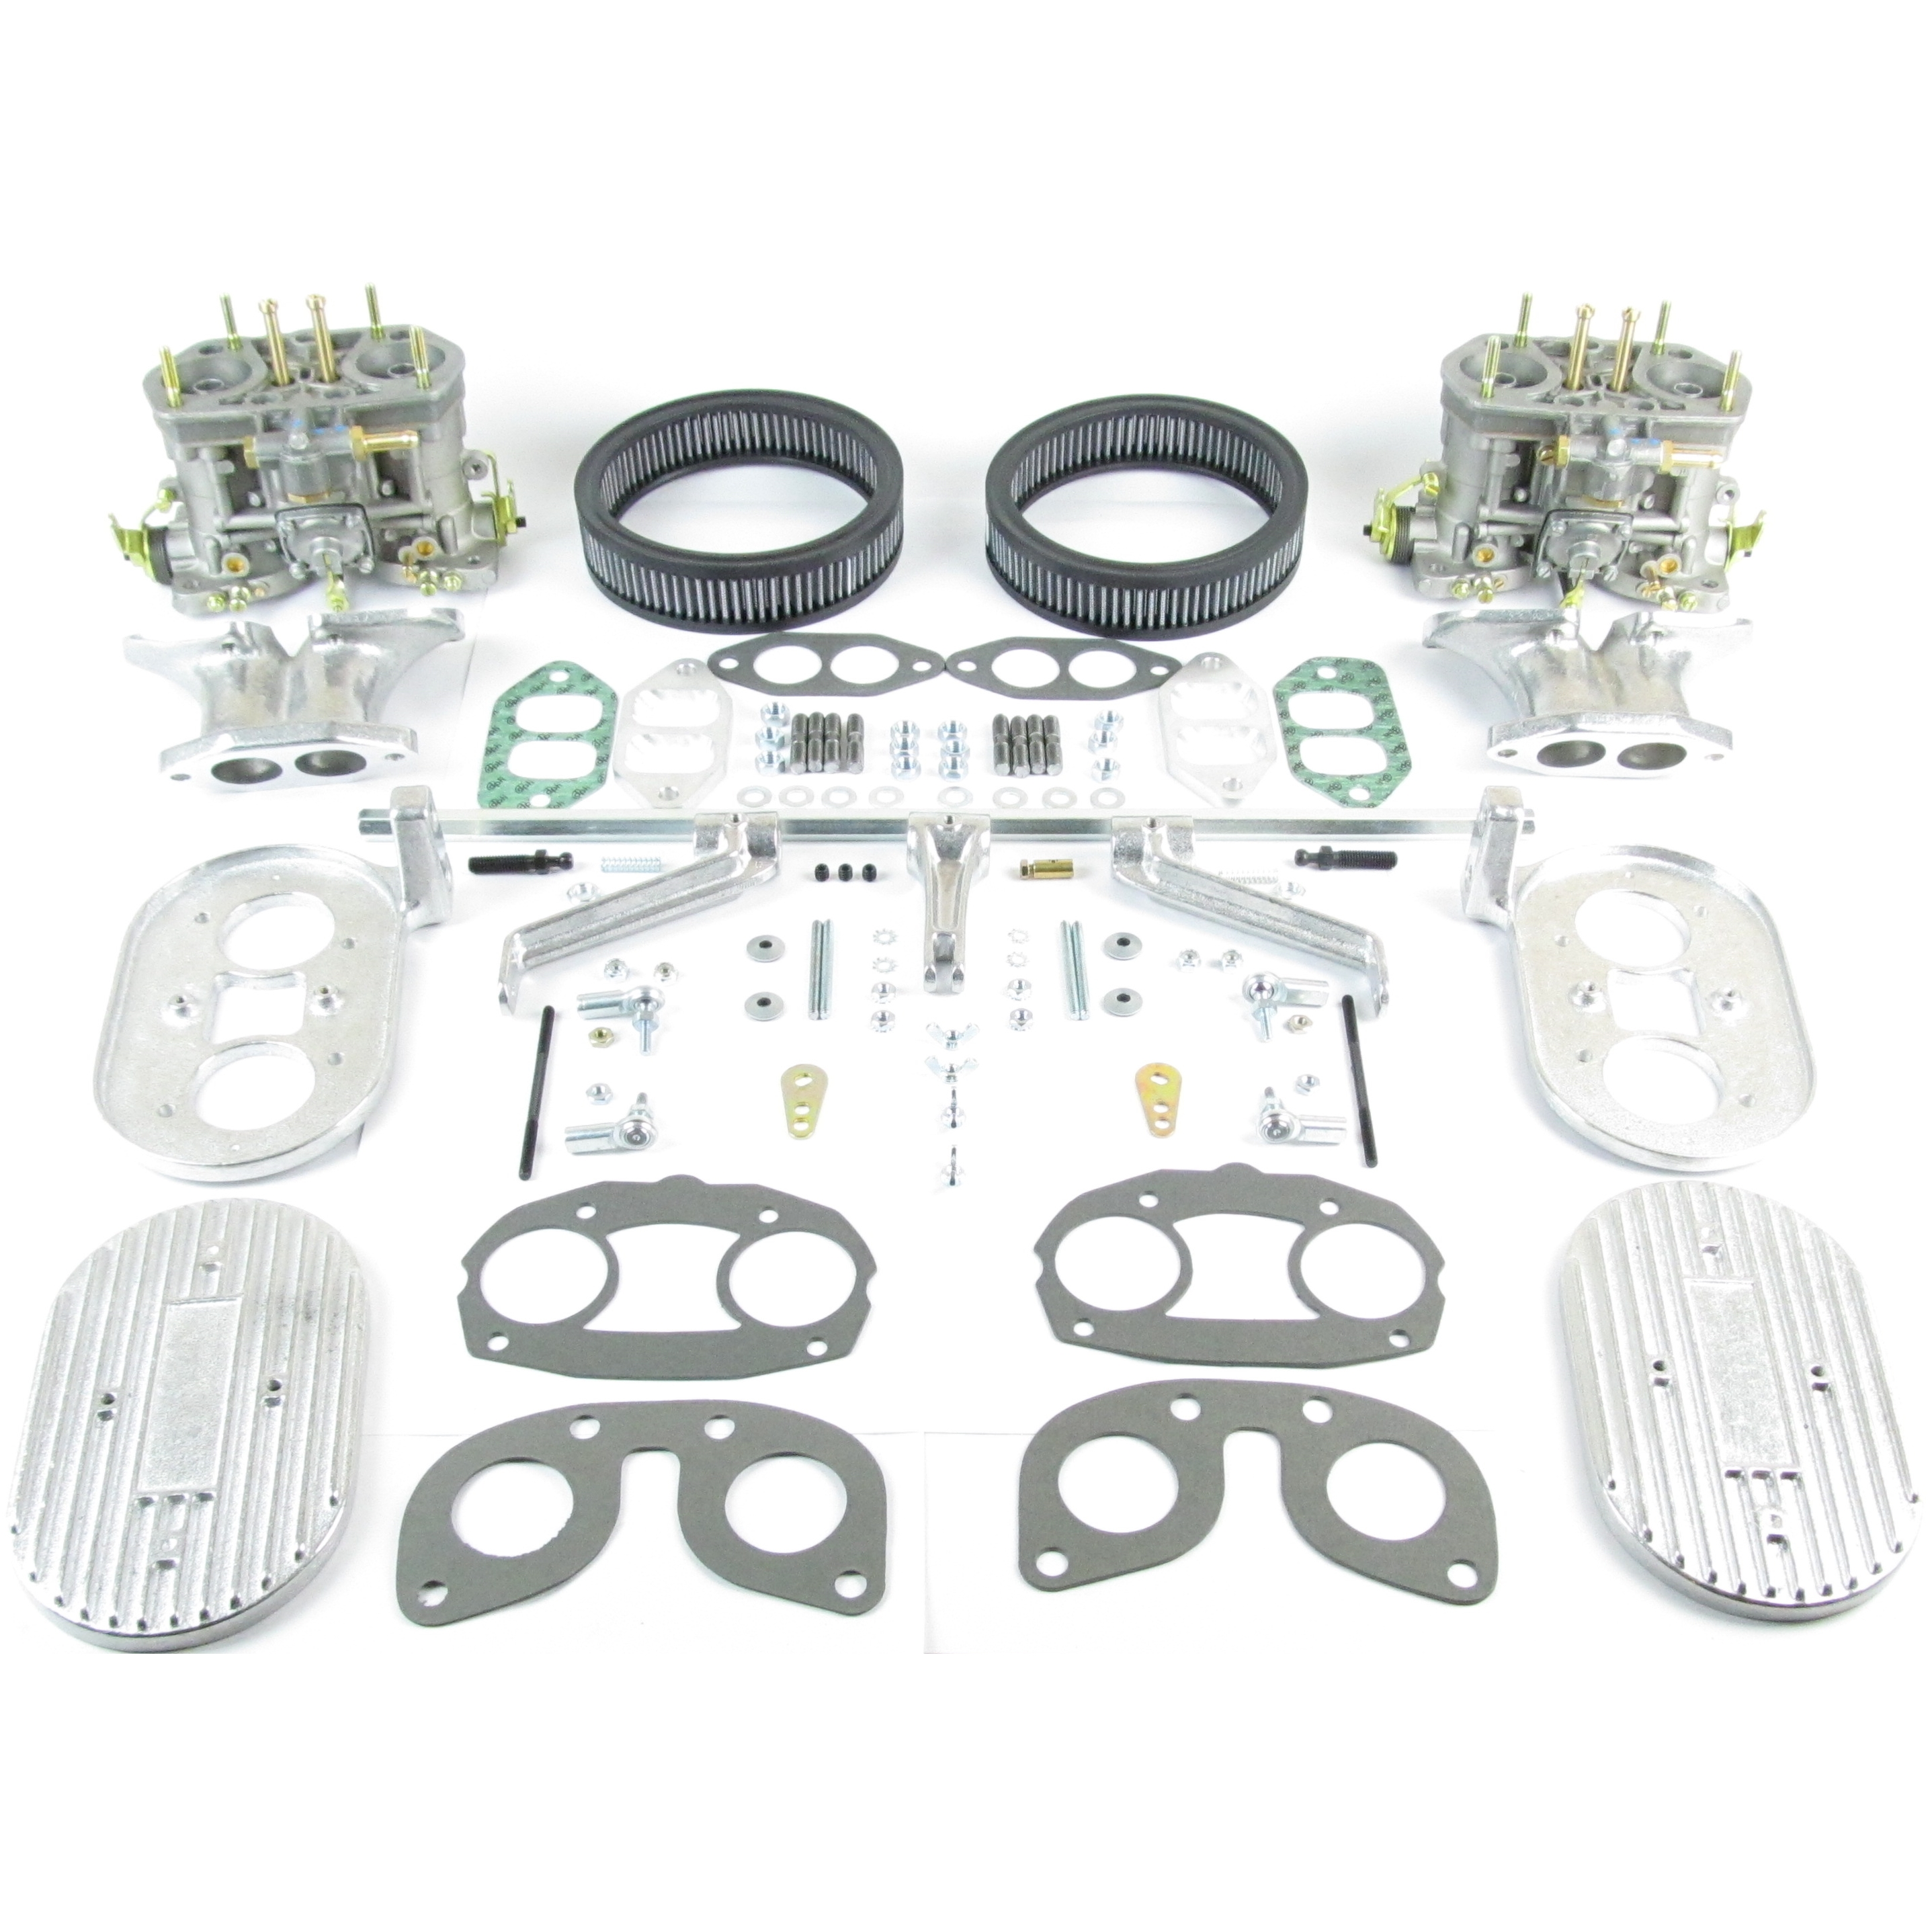 KLASSIEK WATERKOELDE VW T25 CAMPER / BUS TWIN WEBER IDF 40 CARBURETTOR KIT